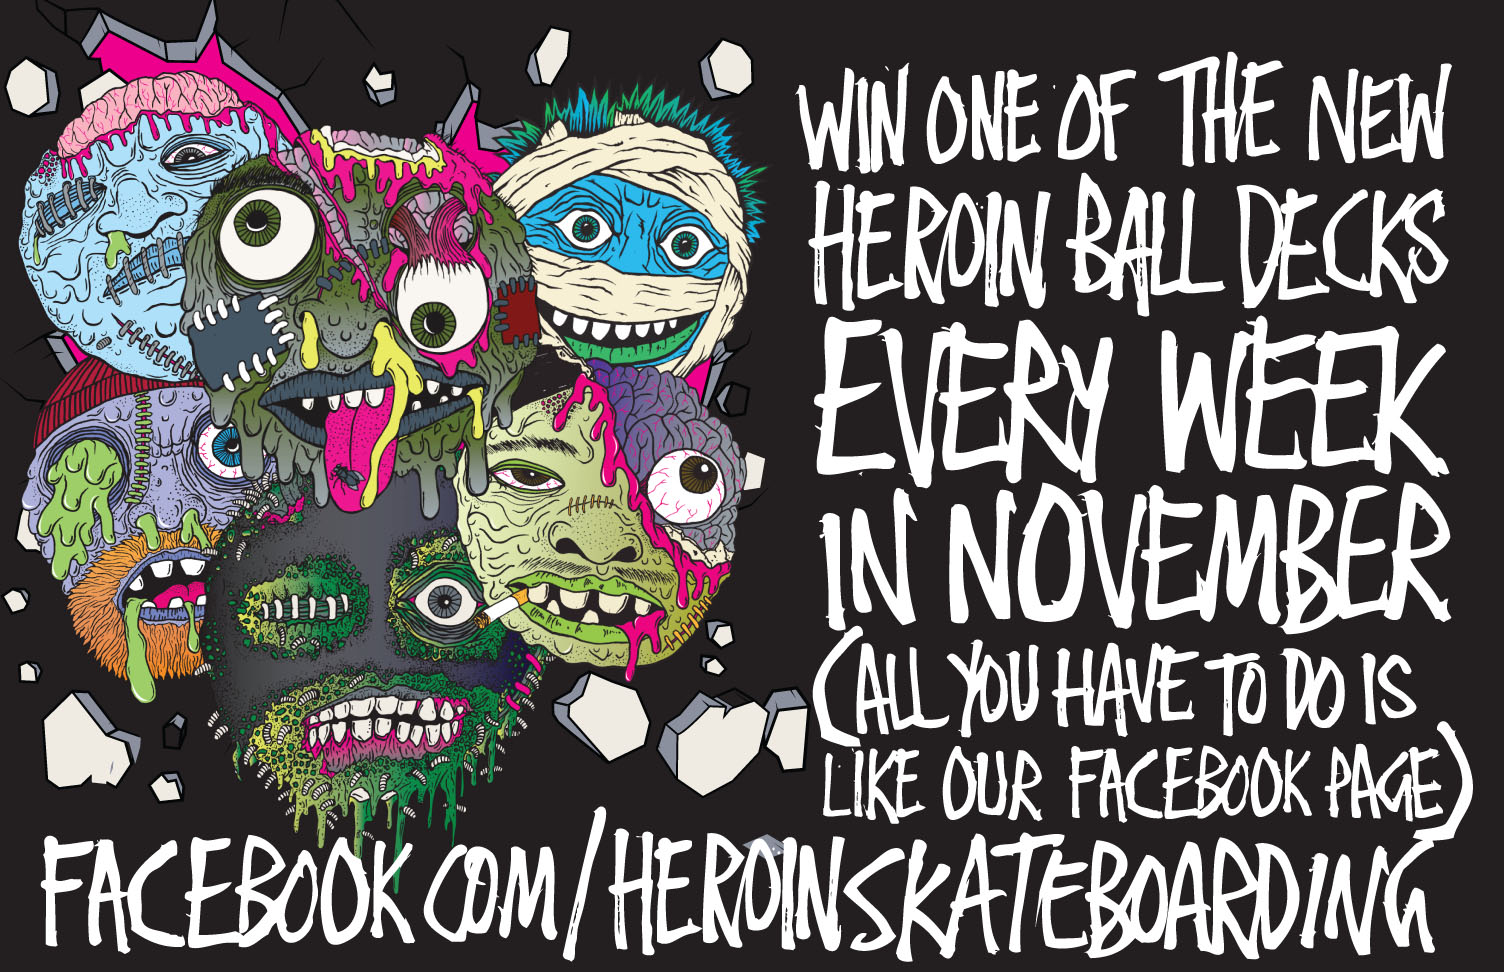 Heroin Facebook Comp